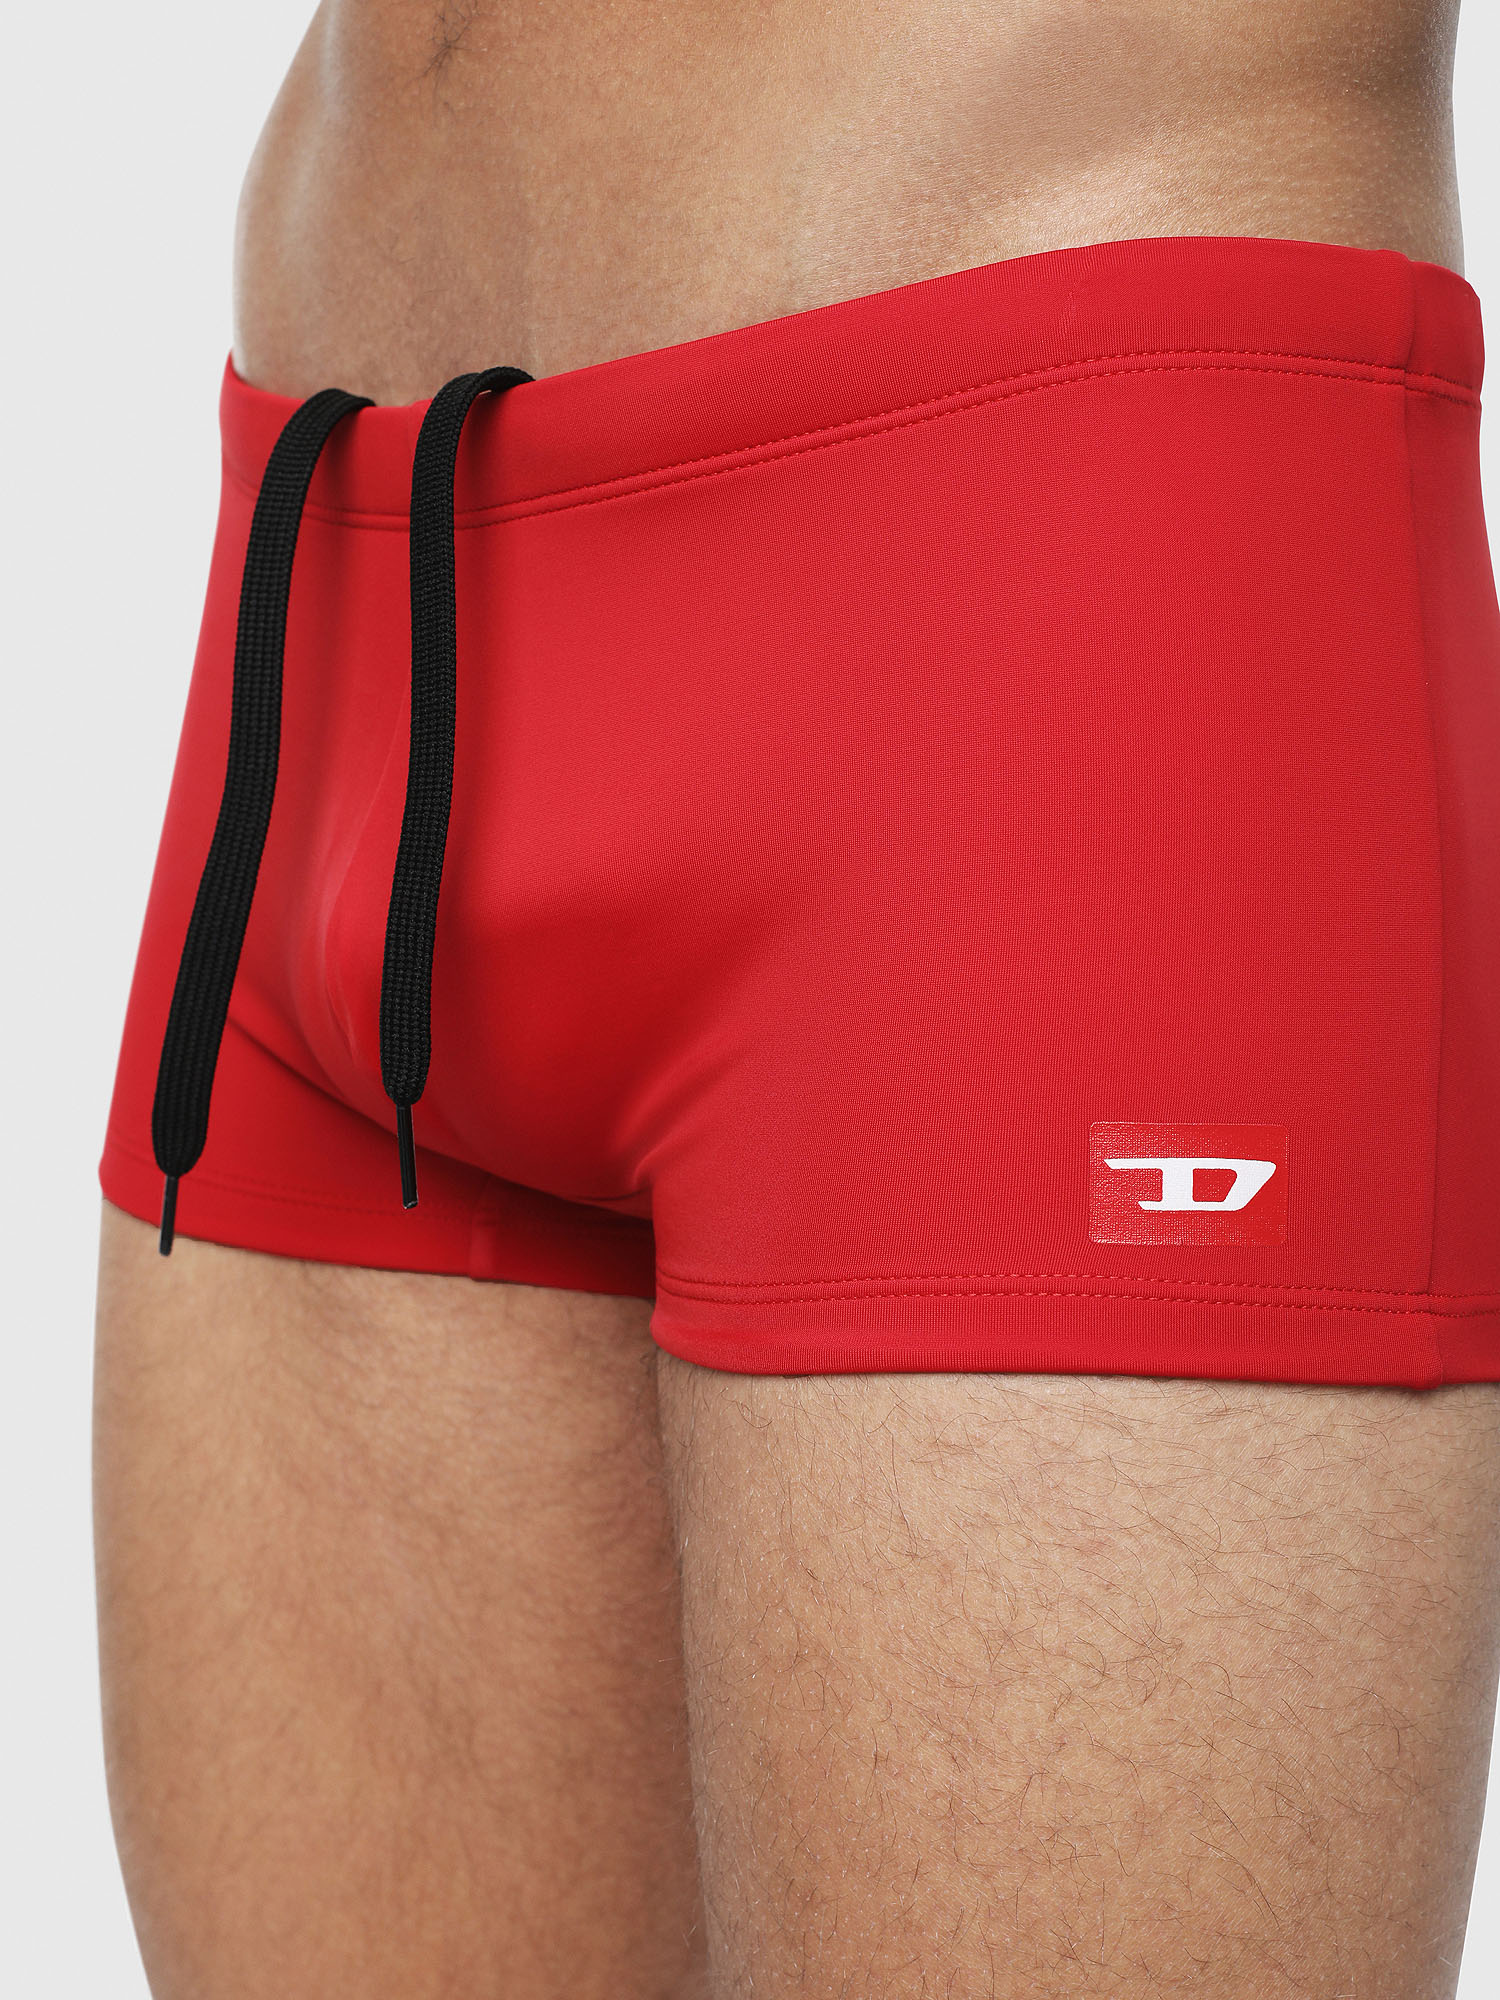 Diesel - BMBX-HERO,  - Swim trunks - Image 3